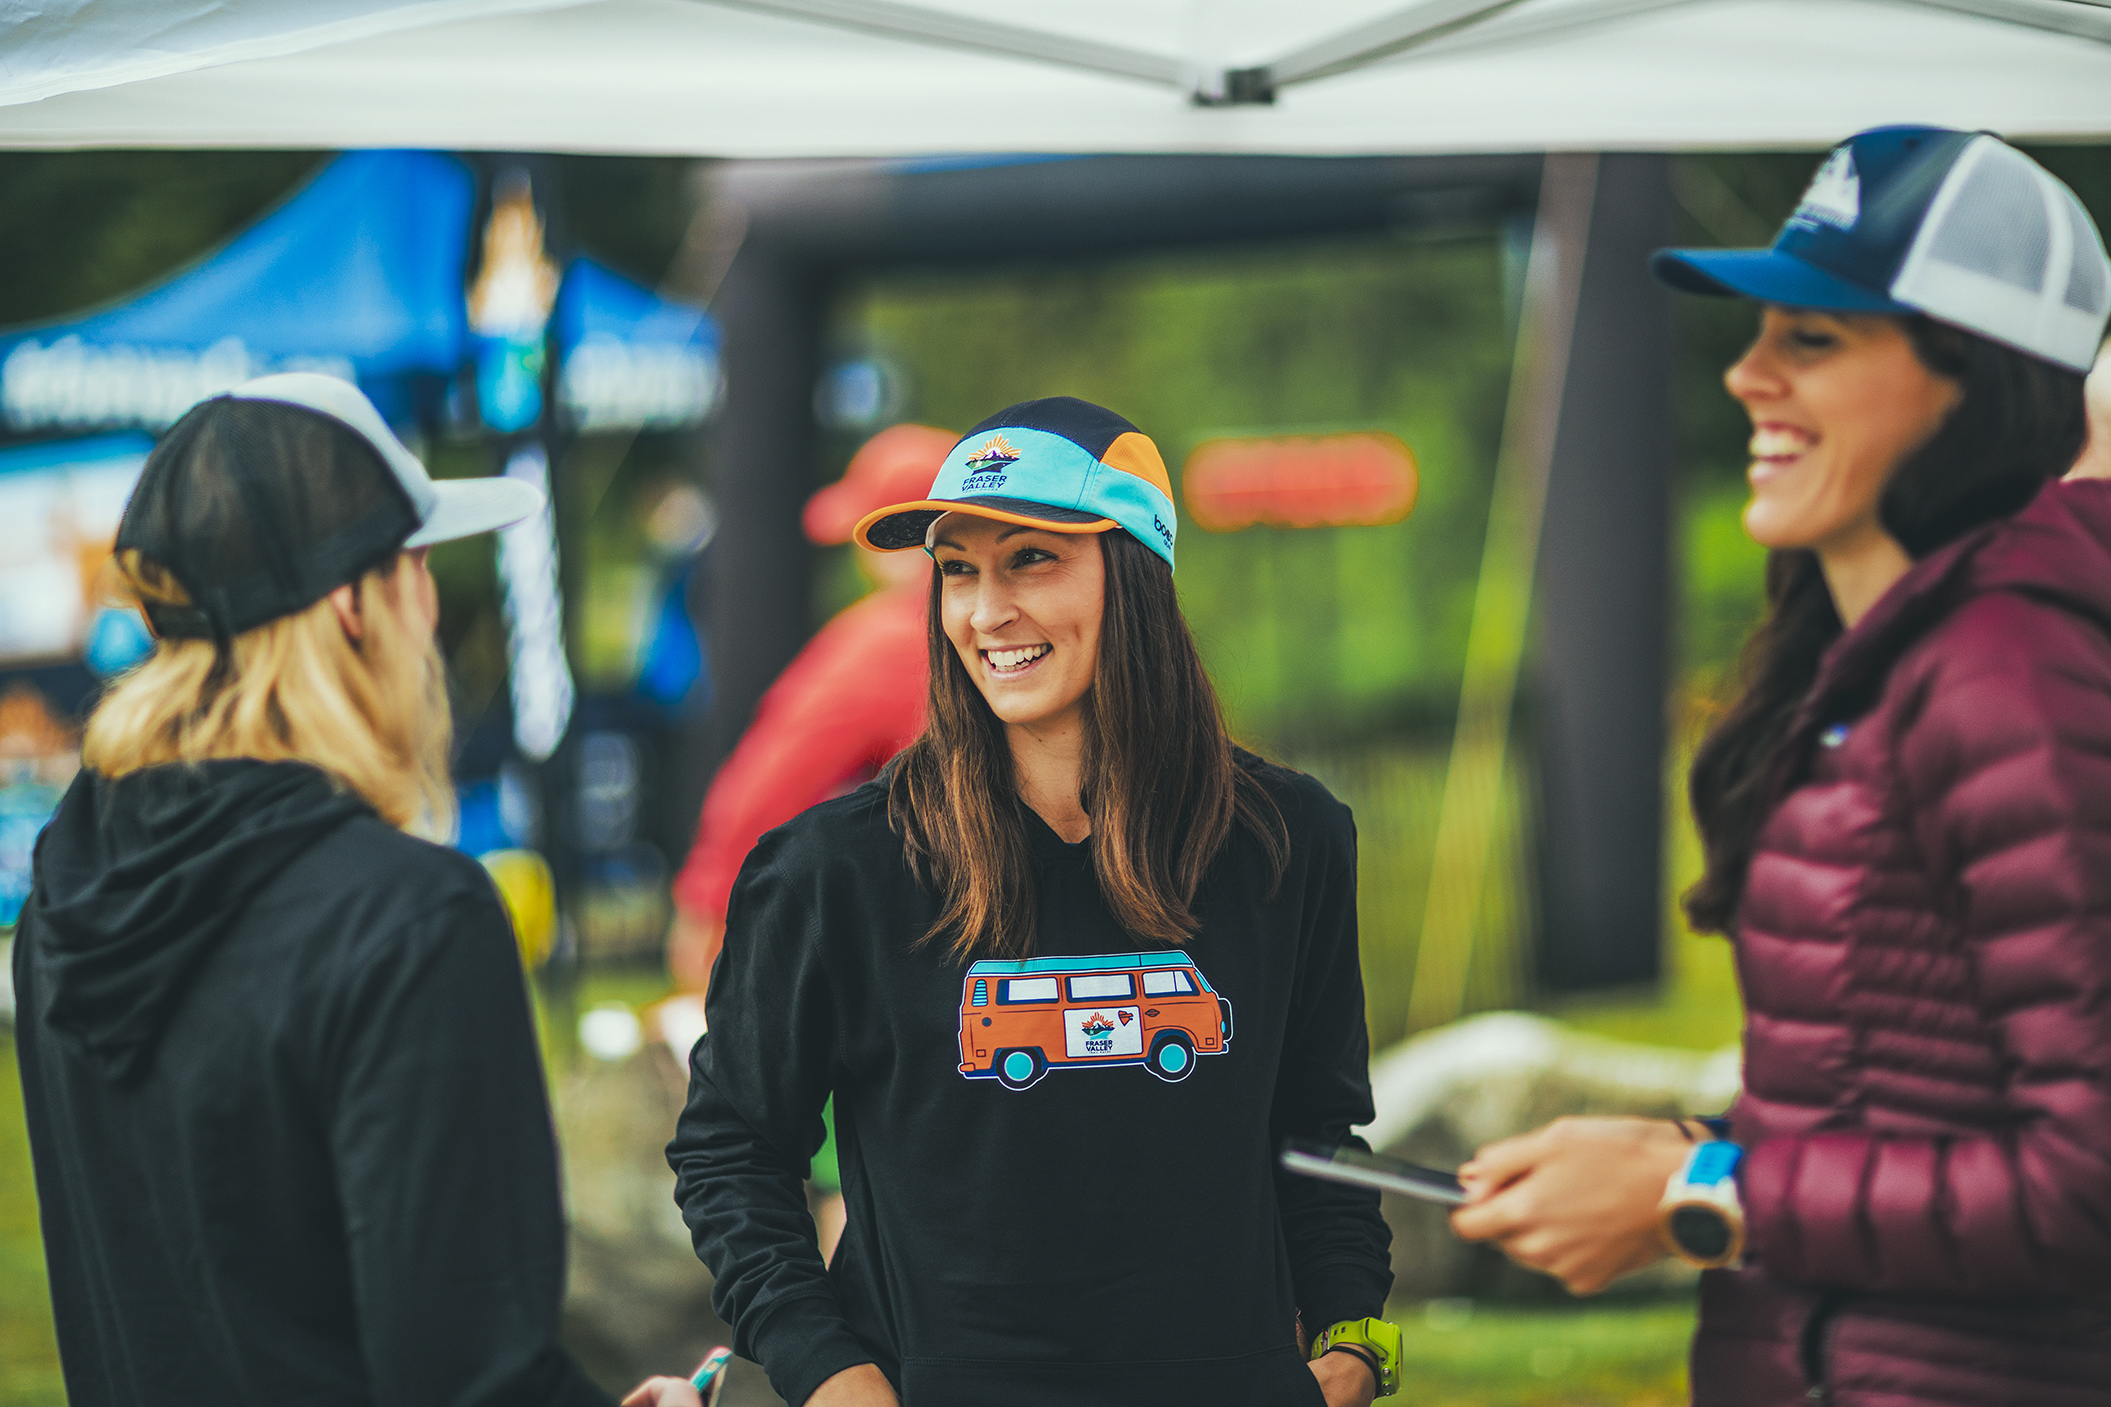 Fraser Valley Trail Races - Bear Mountain - IMG_1241 by Brice Ferre Studio - Vancouver Portrait Adventure and Athlete Photographer.jpg